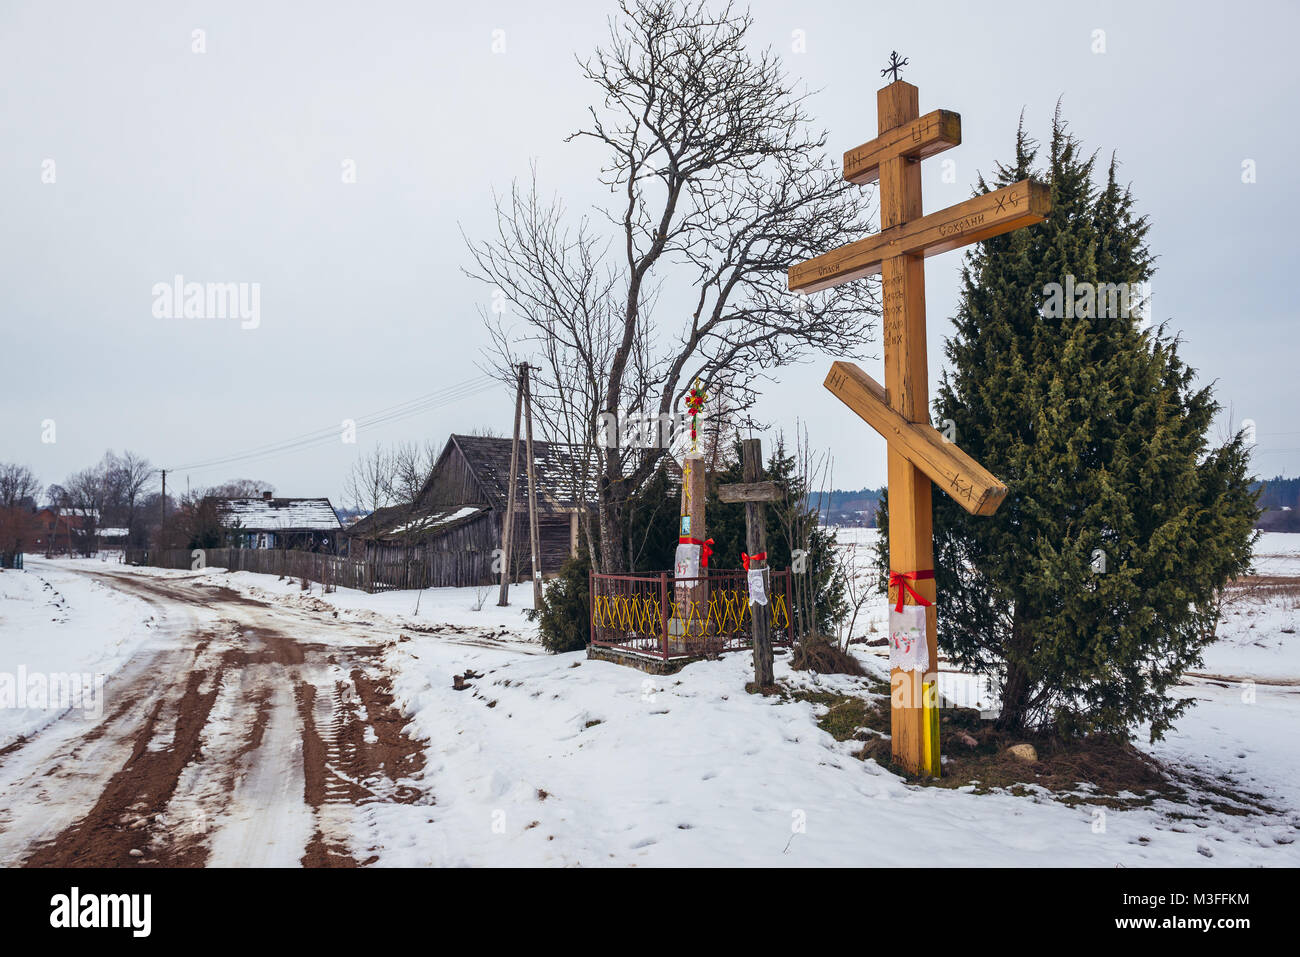 Wayside Orthodox cross in Soce village in so called The Land of Open Shutters, famous for traditional architecture - Stock Image